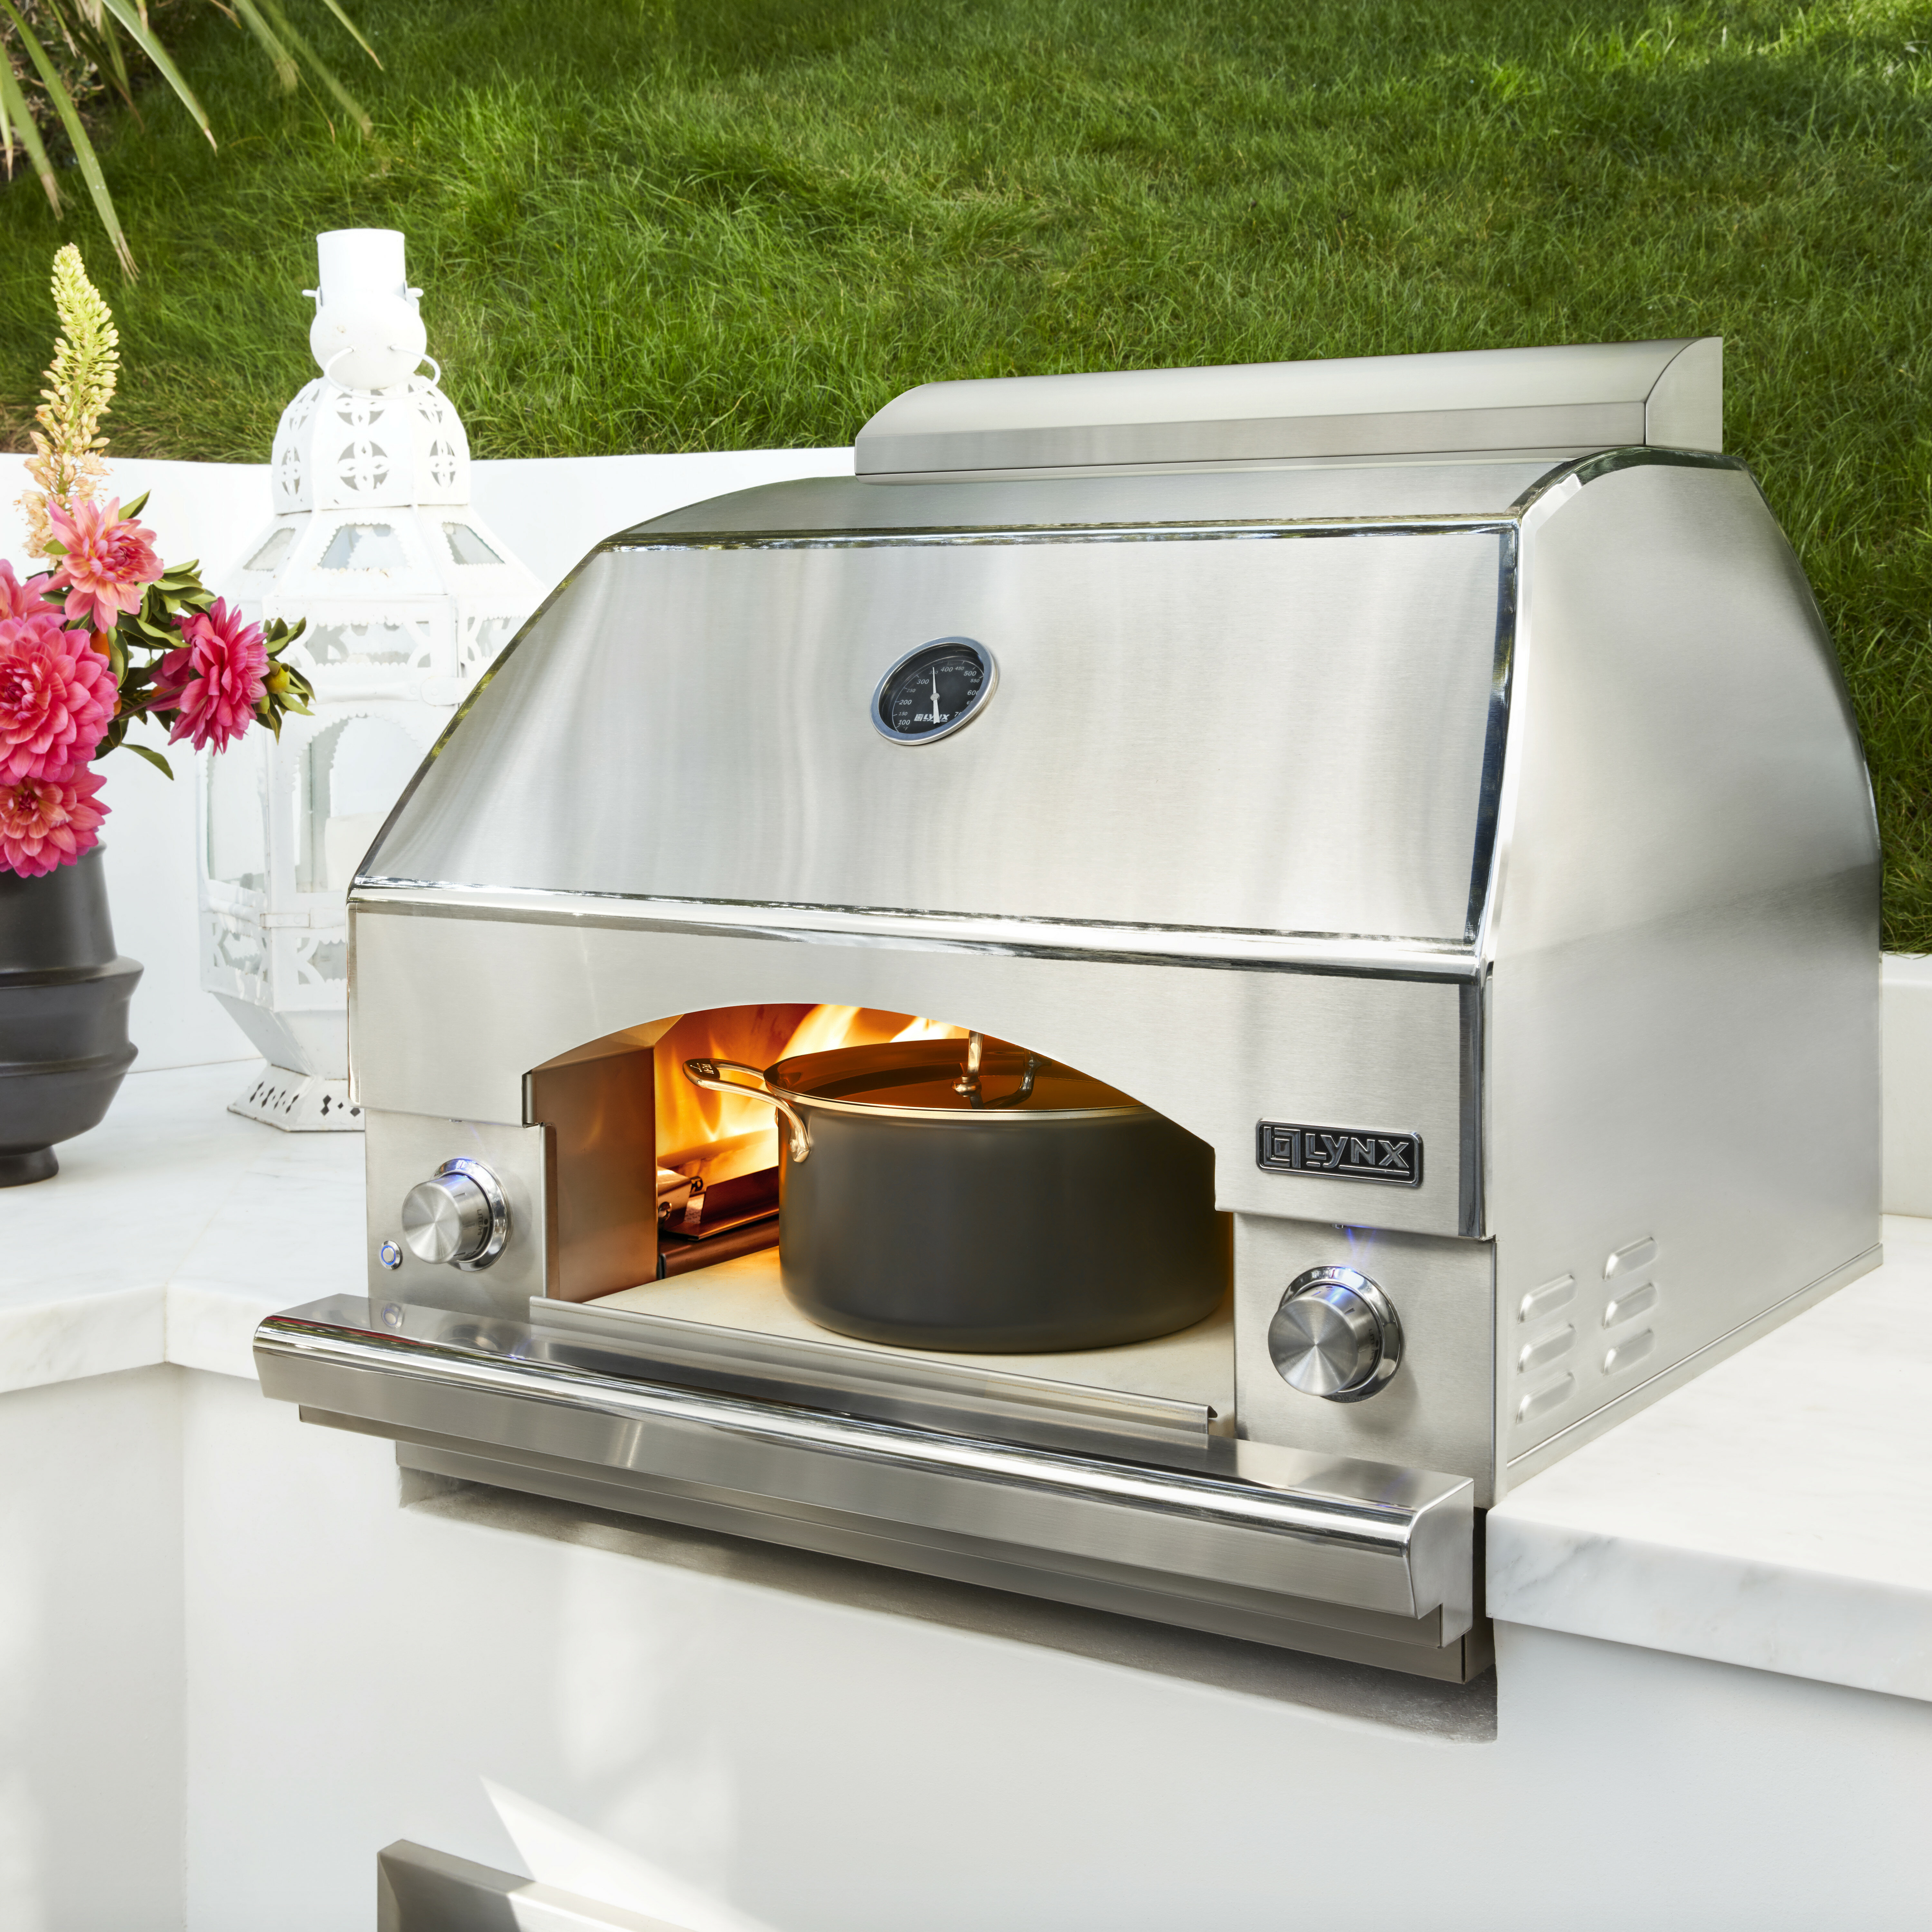 Lynx Freestanding Napoli Outdoor Pizza Oven Wayfair